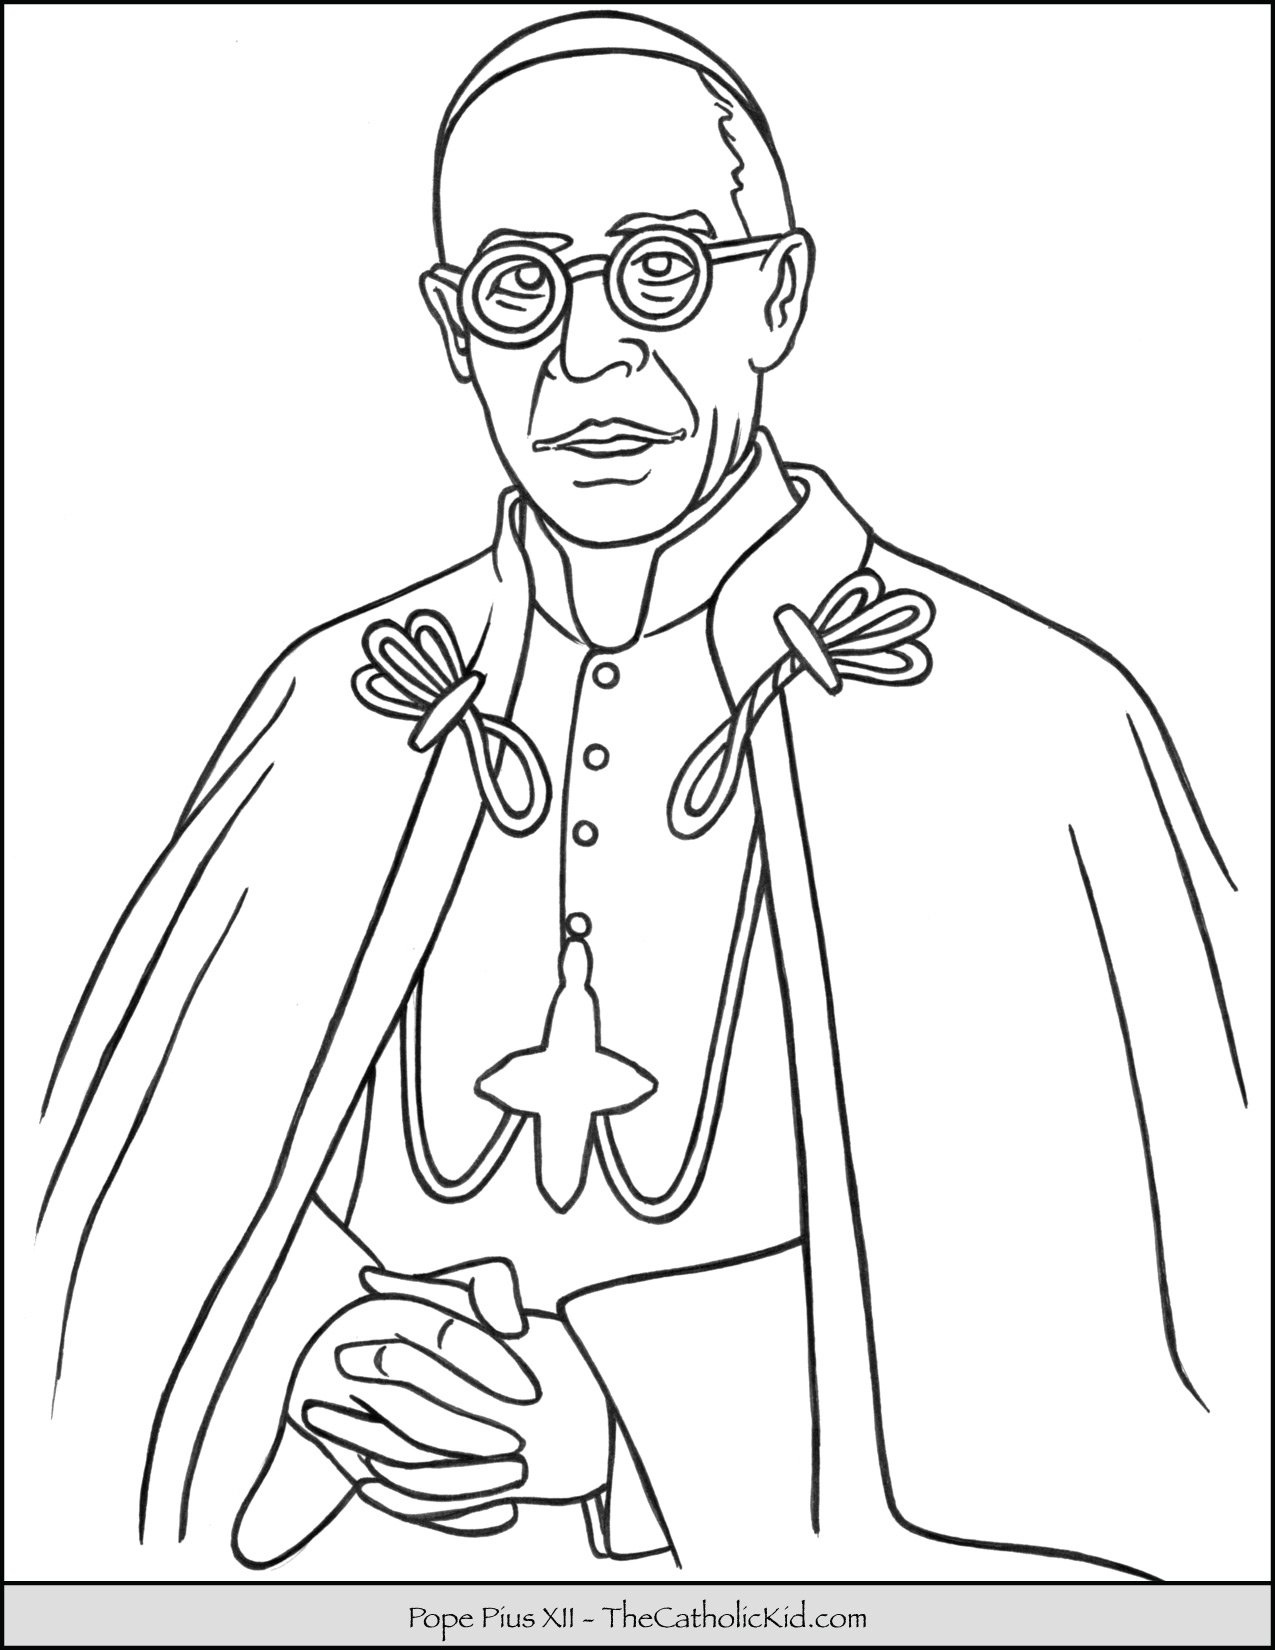 Pope Pius XII Coloring Page